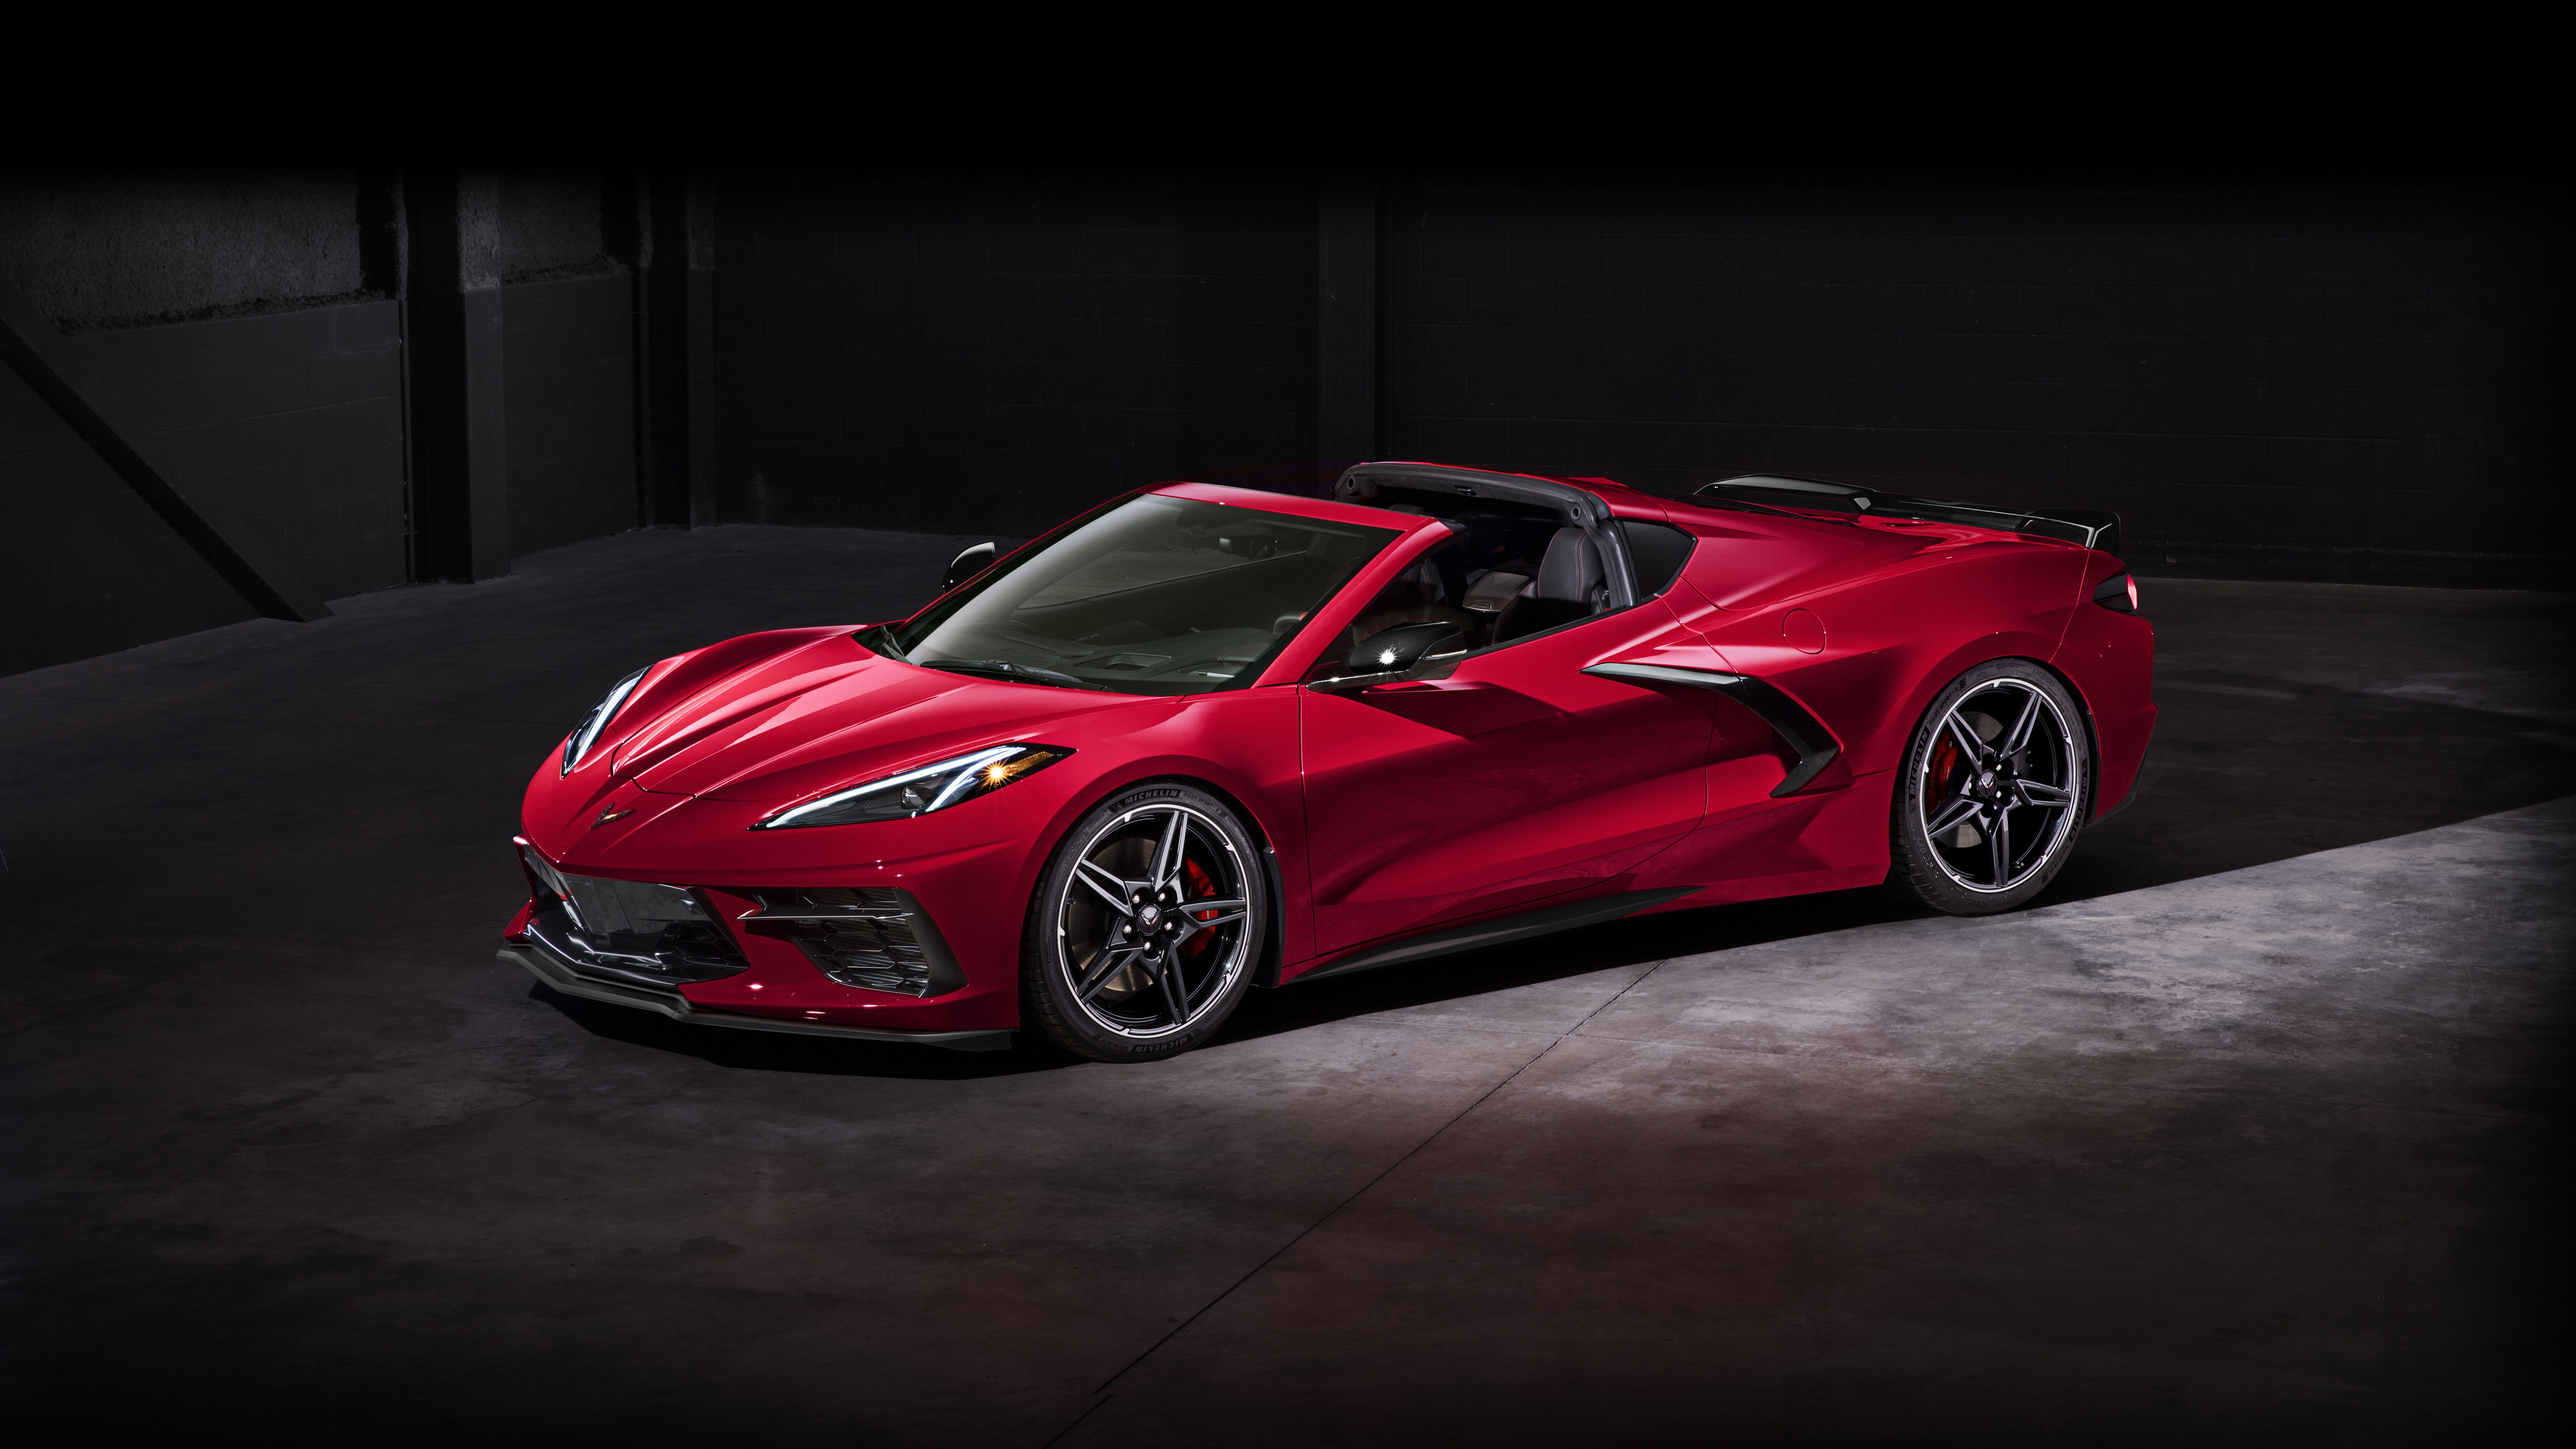 2020 Chevrolet Corvette Stingray Z51 Convertible 4K Wallpaper HD 5120x2880